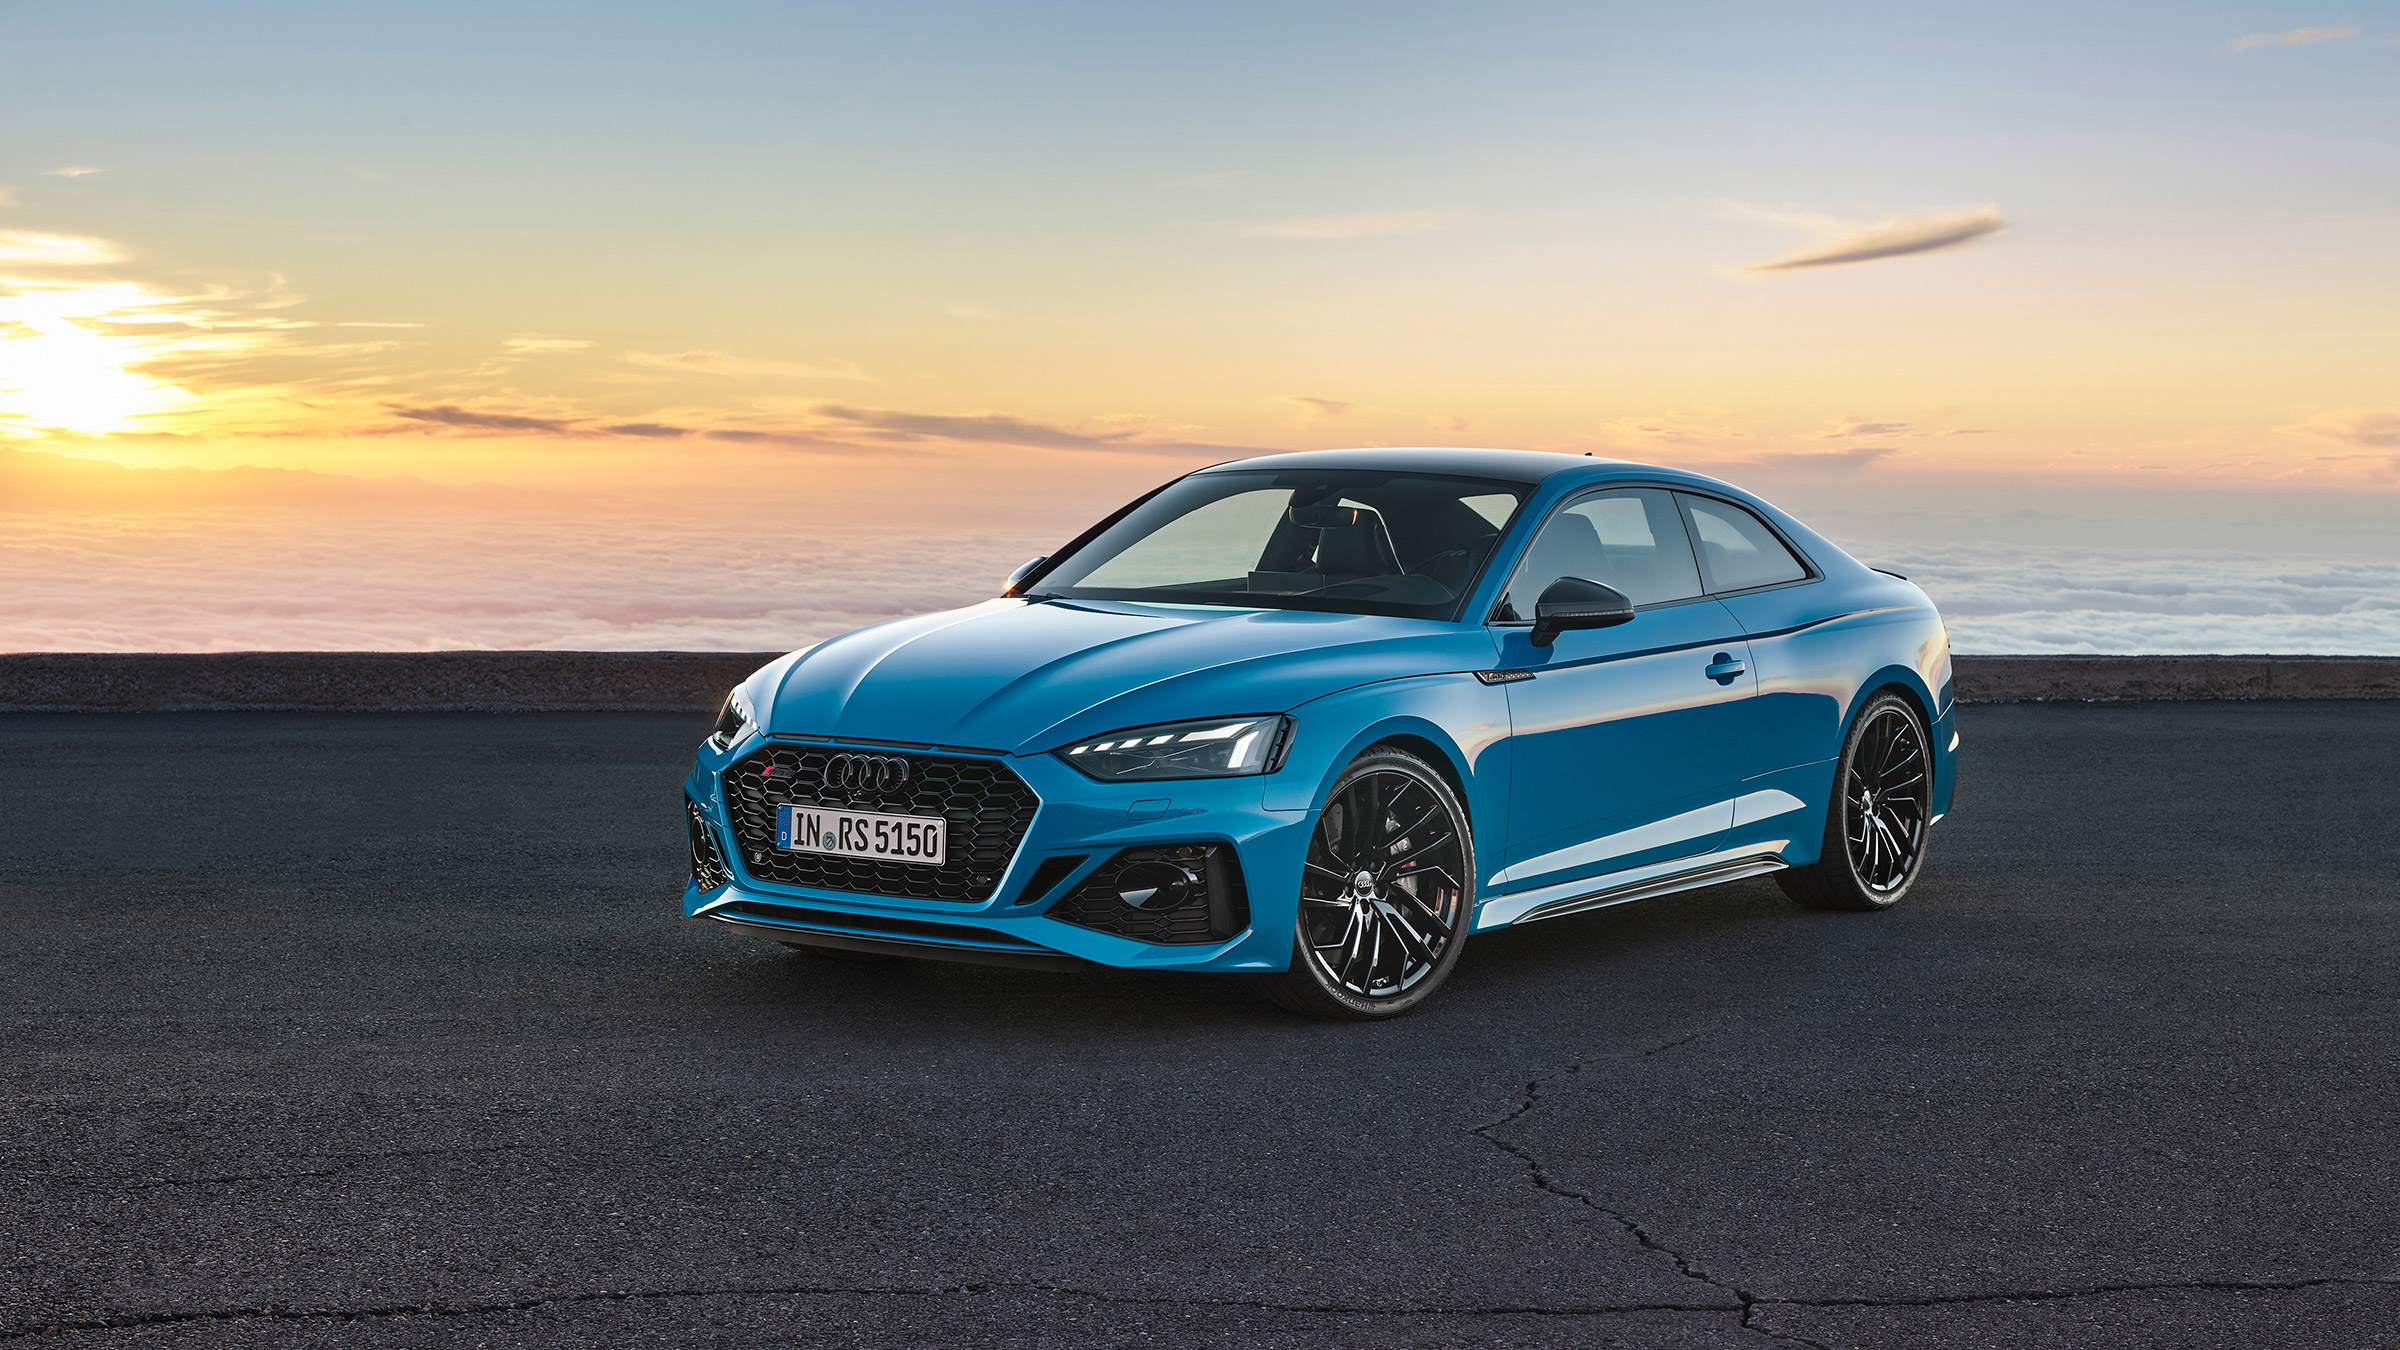 2020 Audi RS5 revealed - pictures   Evo